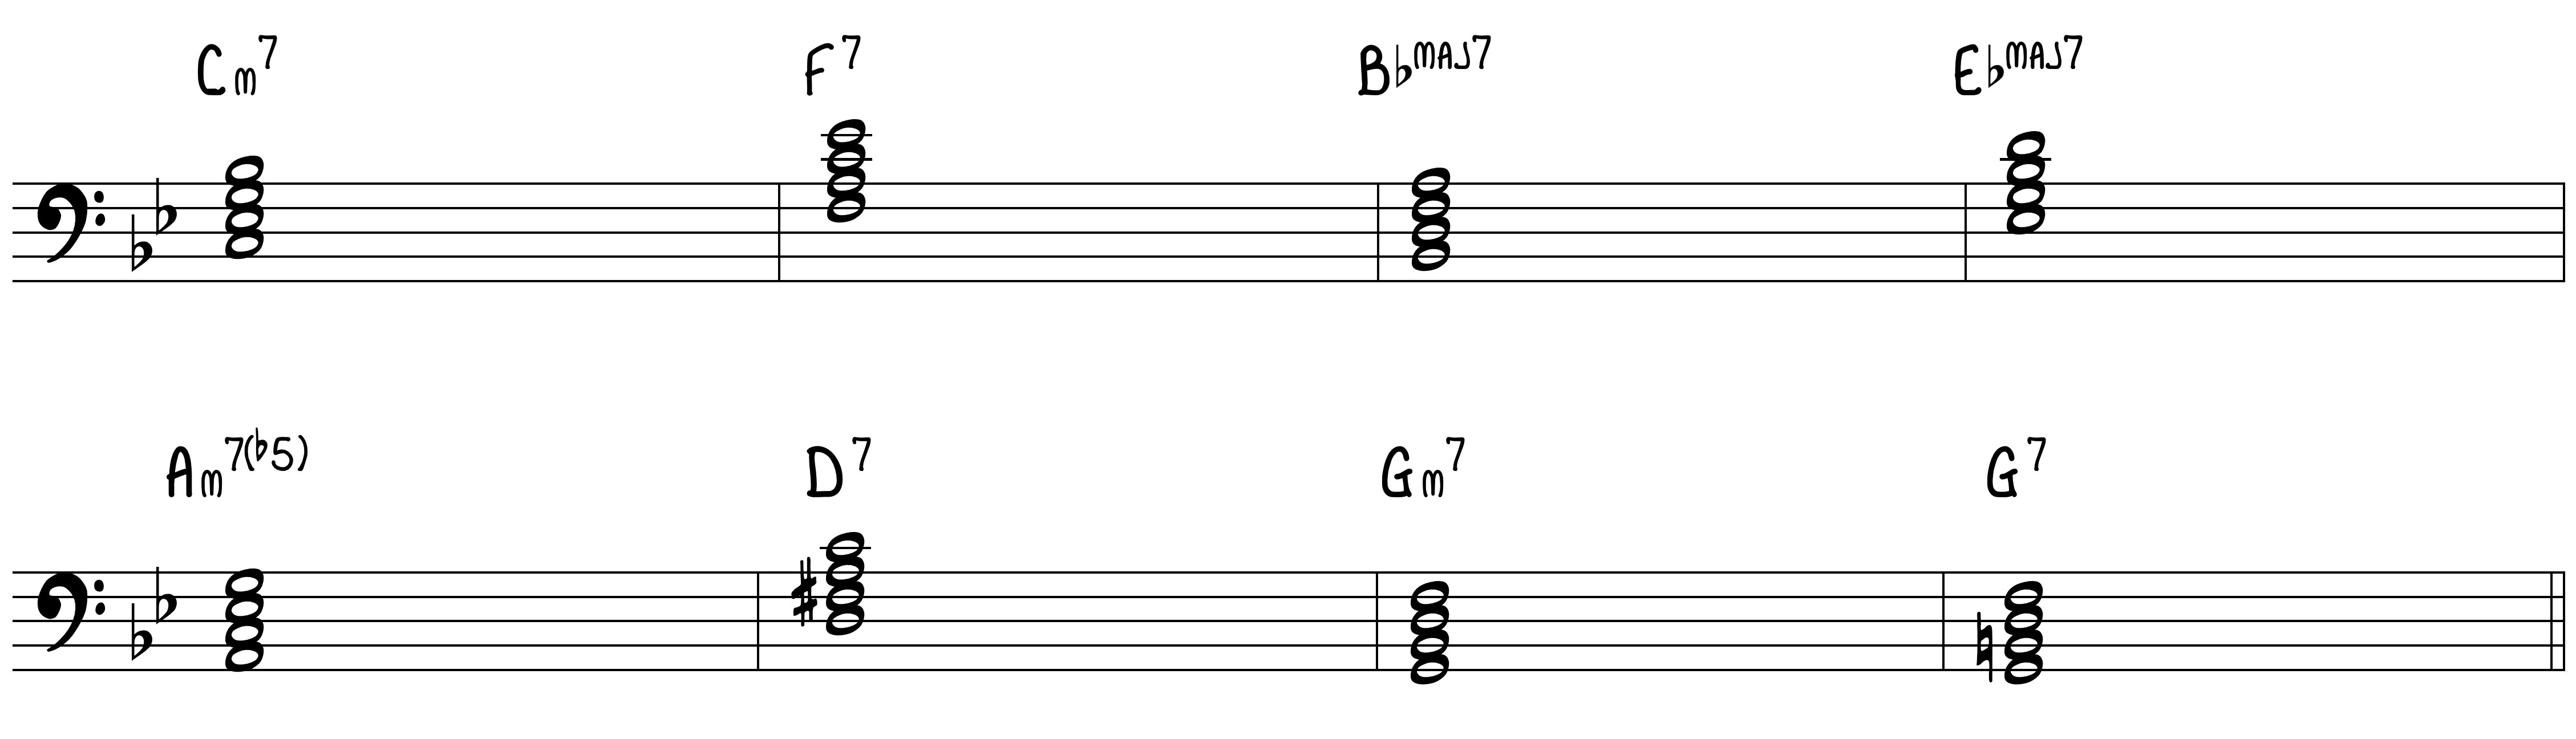 Autumn Leaves Root Position 7th Chords